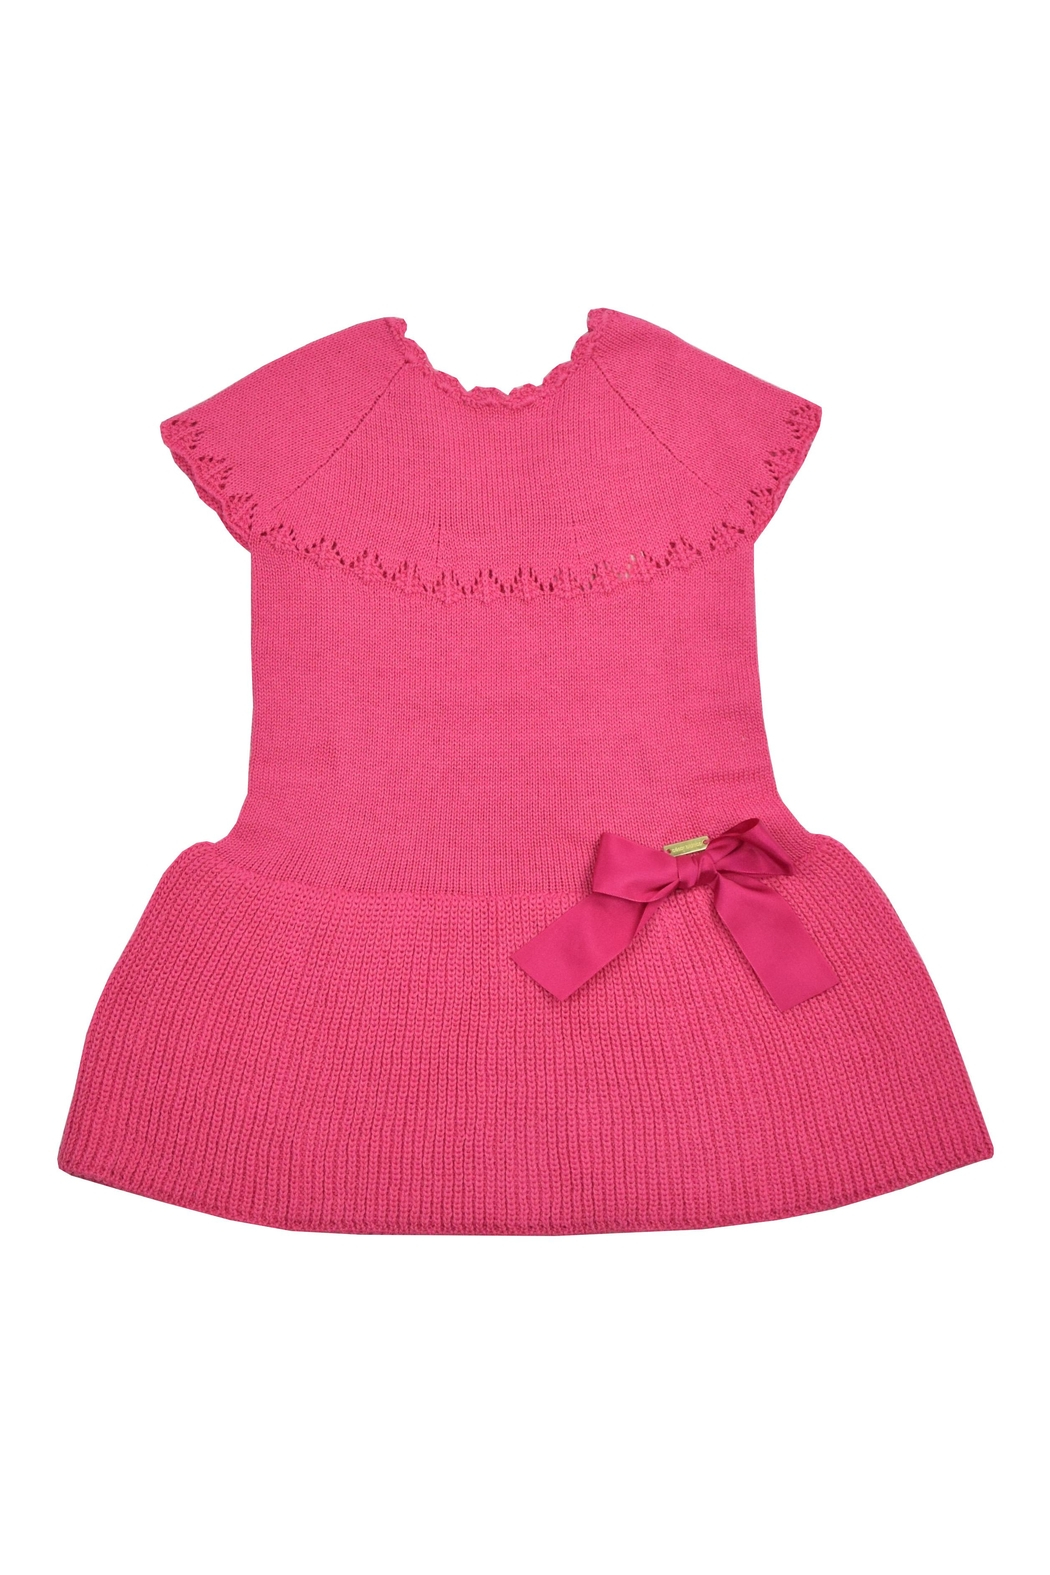 cesar blanco Fuchsia Knitted Dress - Main Image